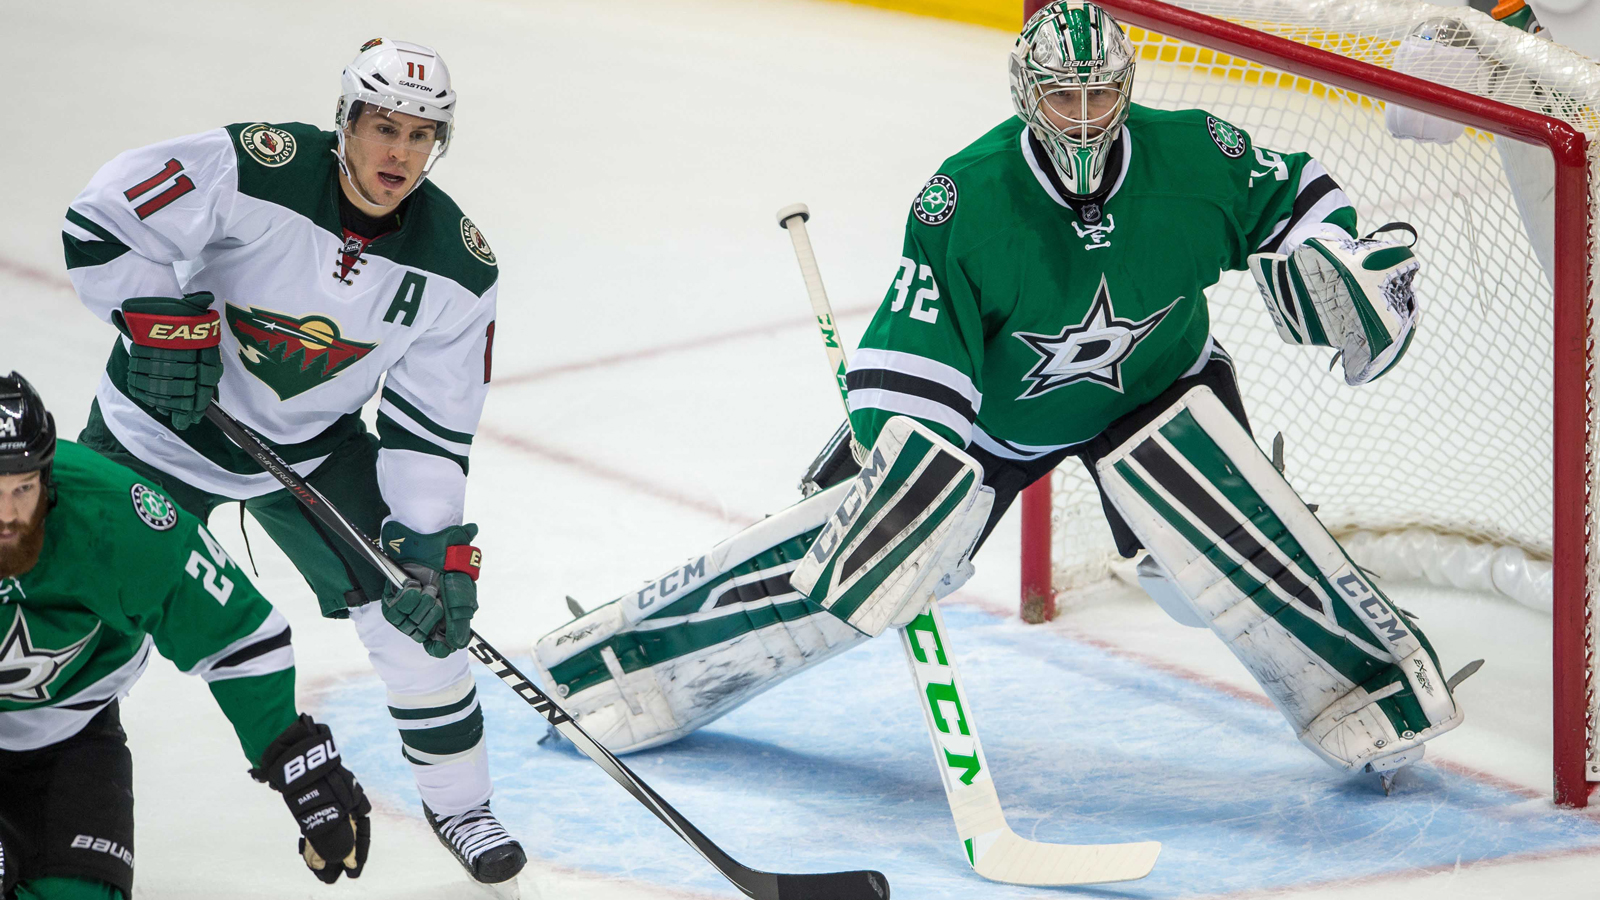 Parise, Vanek out for Wild, Stars' Seguin likely to miss Game 4